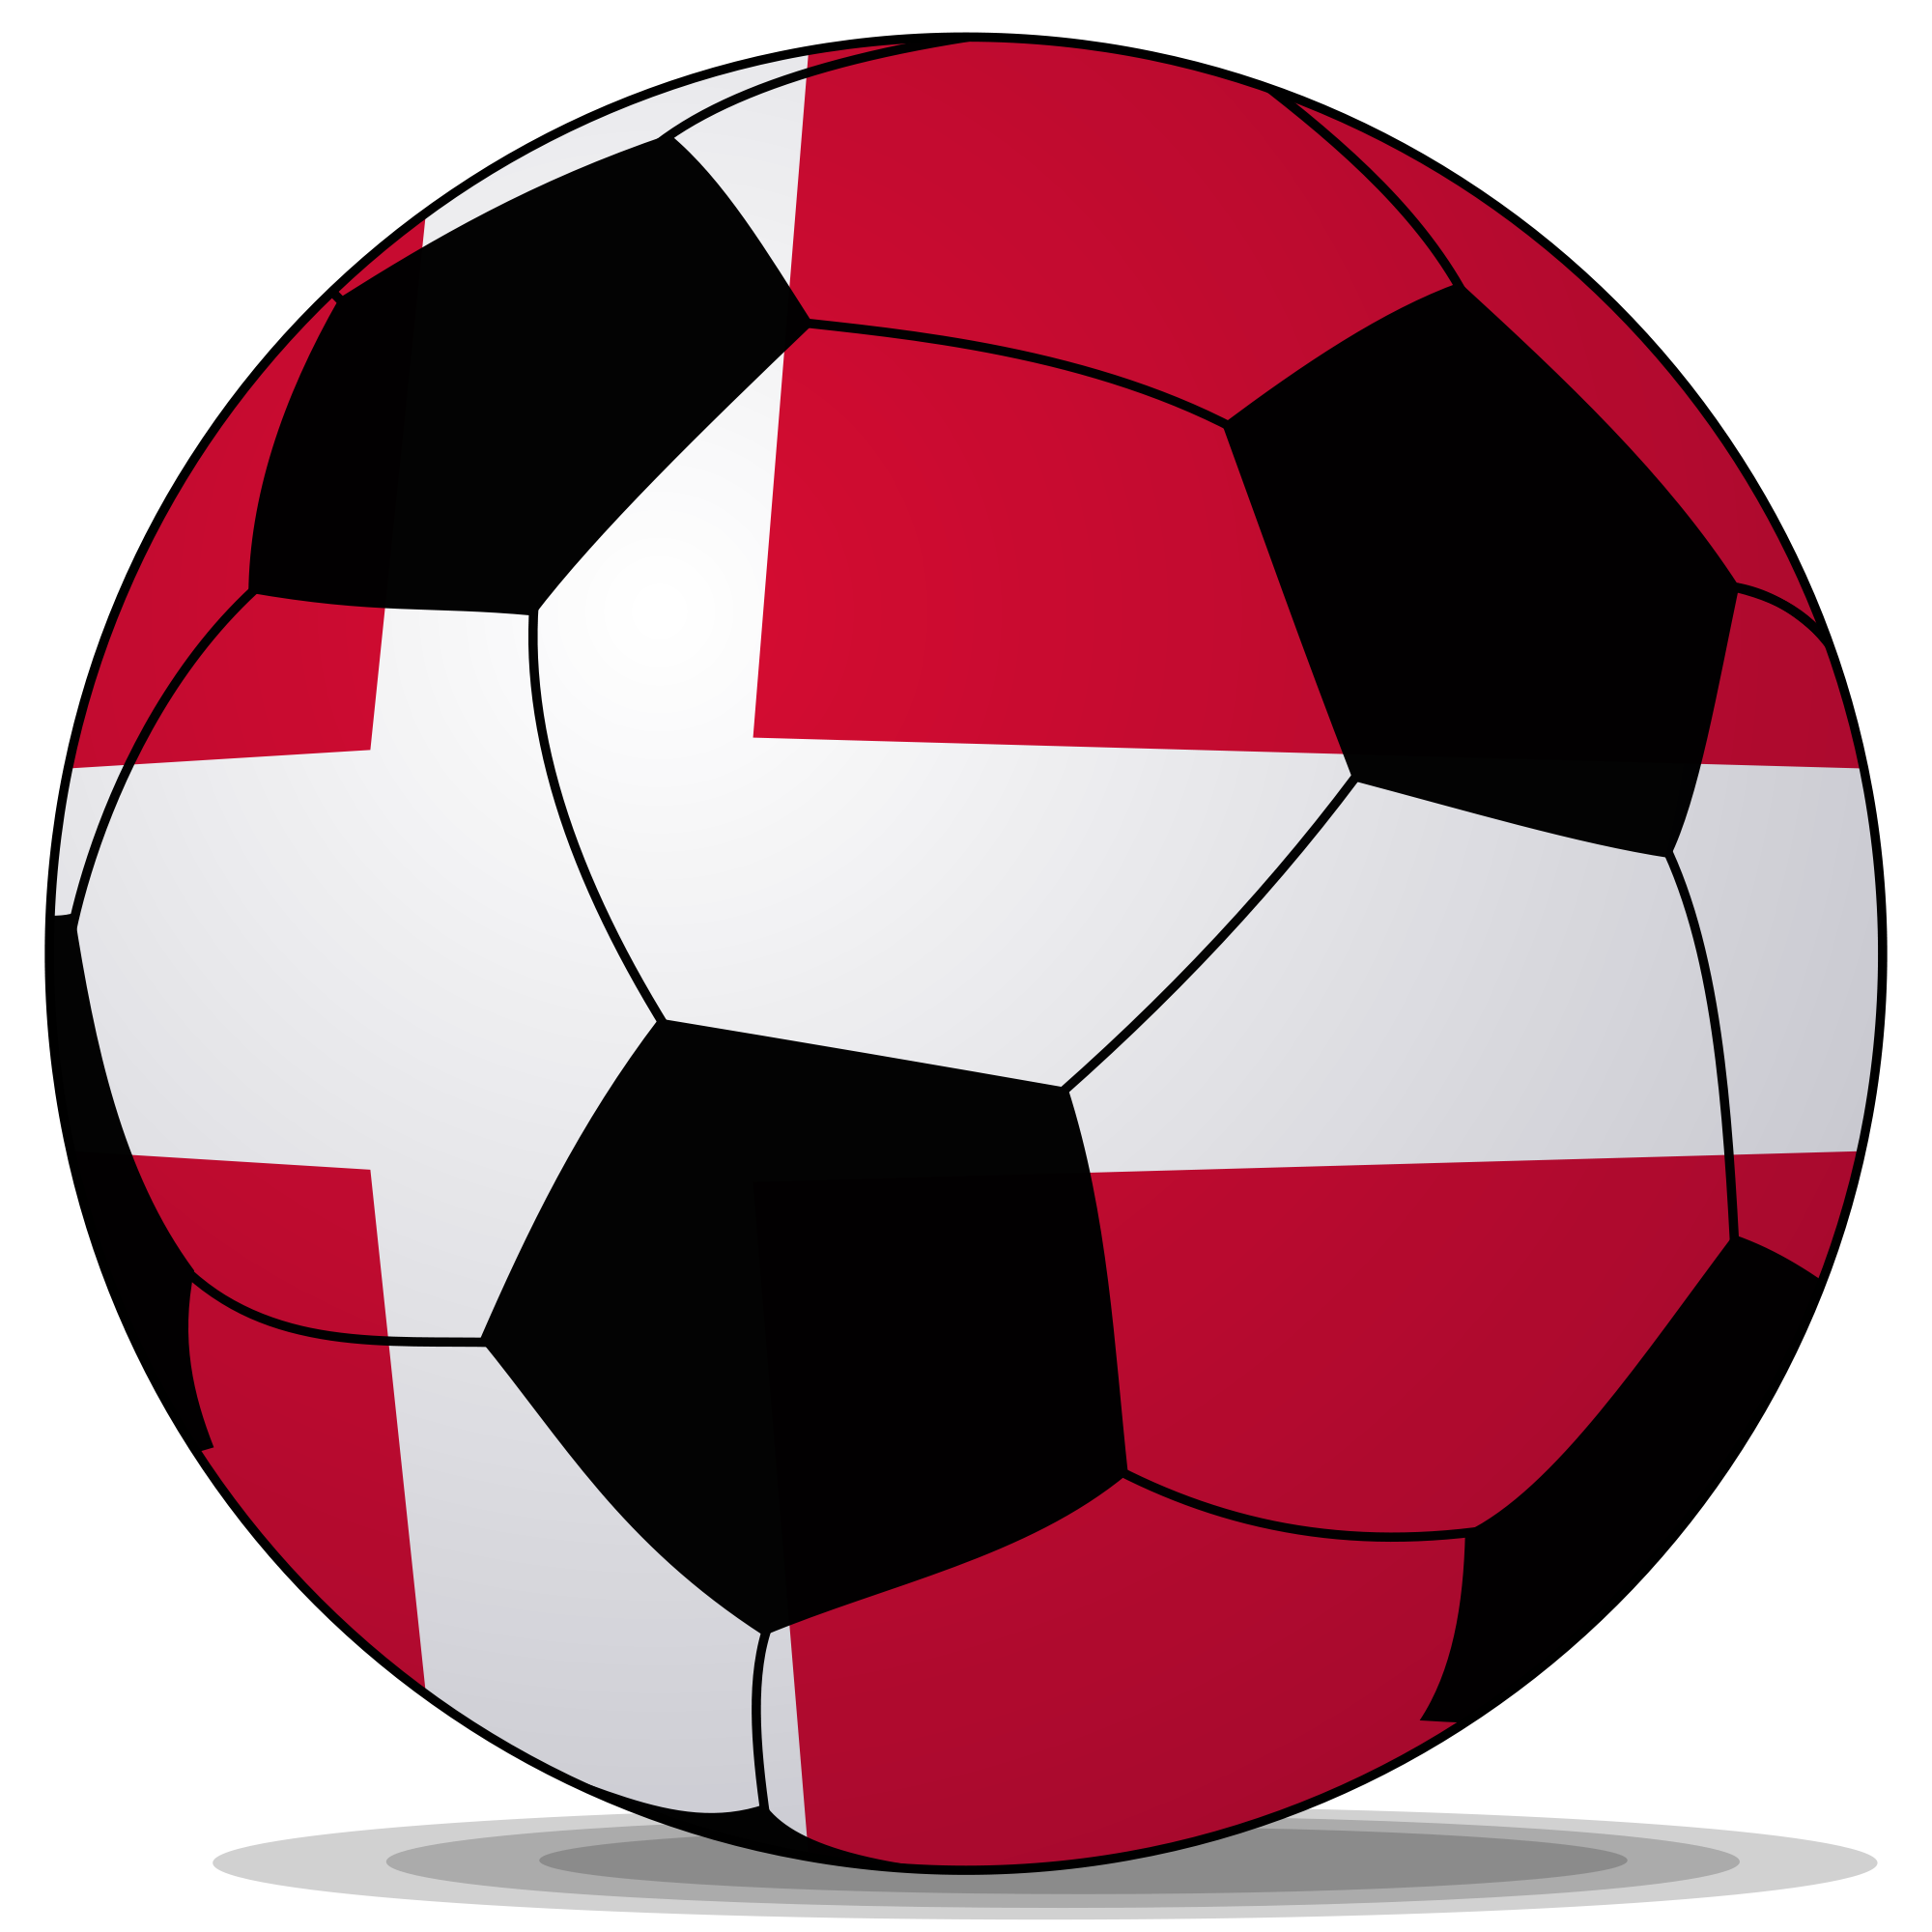 Png images ball. Football clipart red